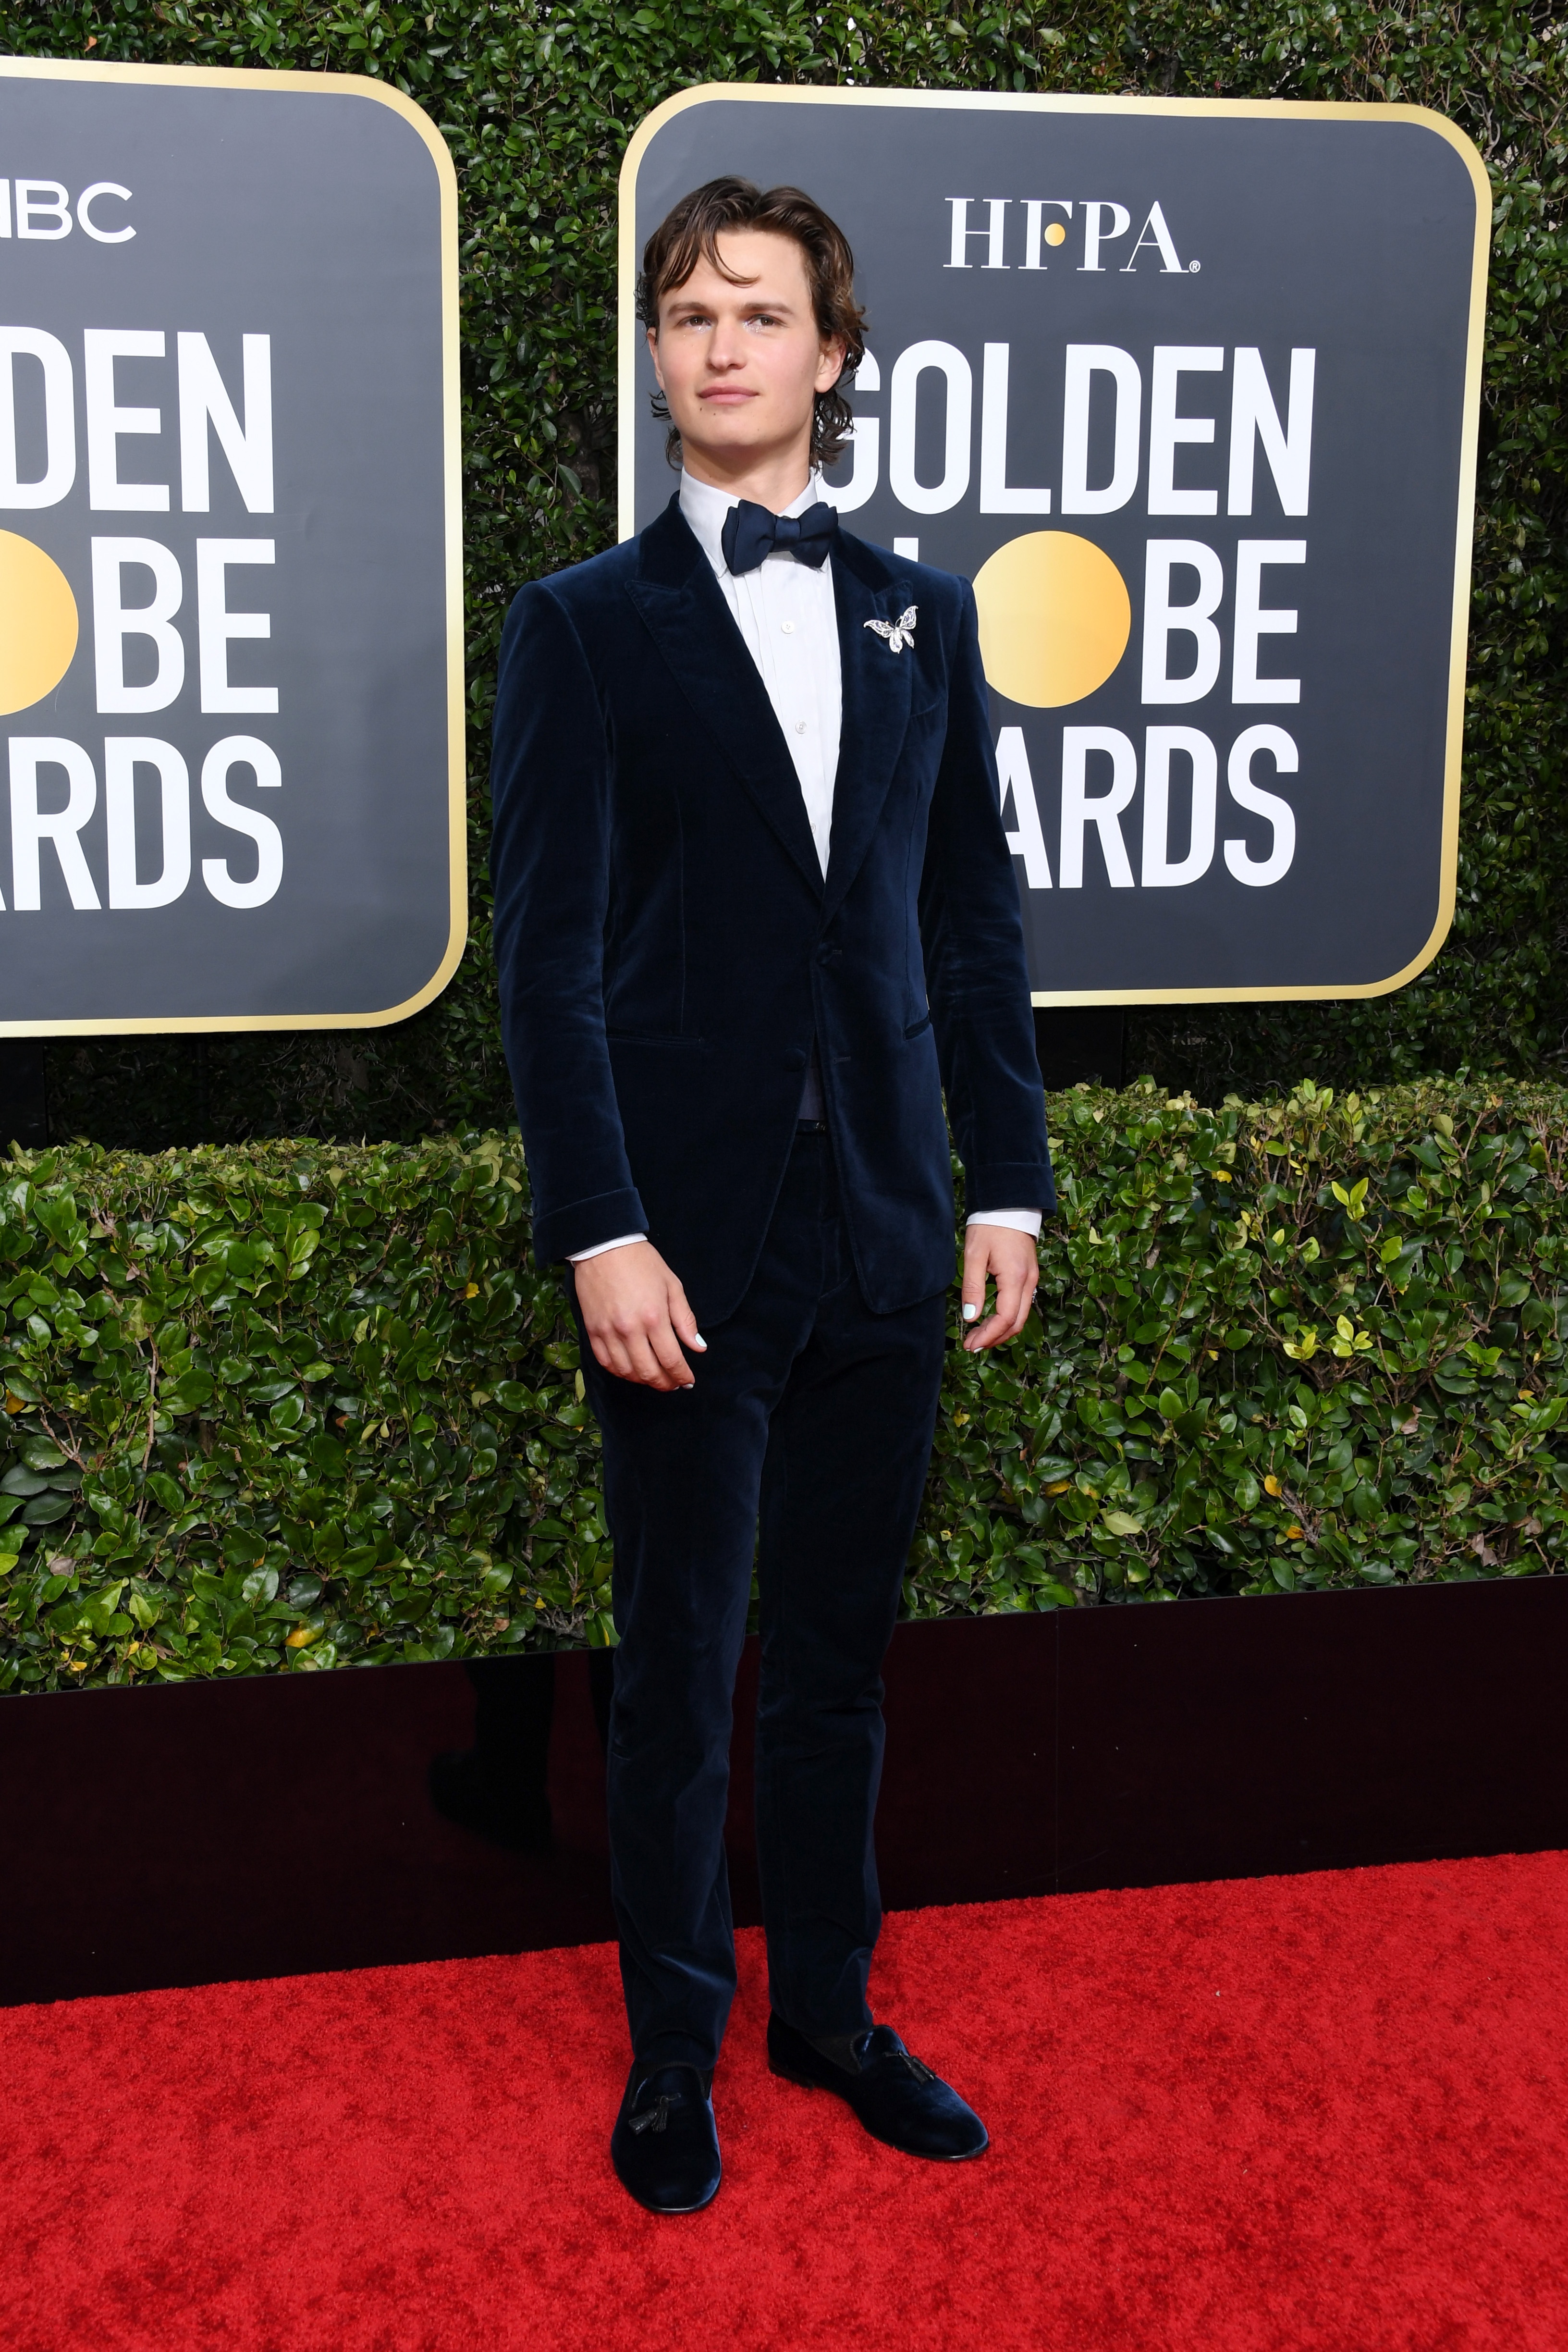 BEVERLY HILLS, CALIFORNIA - JANUARY 05: Ansel Elgort attends the 77th Annual Golden Globe Awards at The Beverly Hilton Hotel on January 05, 2020 in Beverly Hills, California. (Photo by Jon Kopaloff/Getty Images)